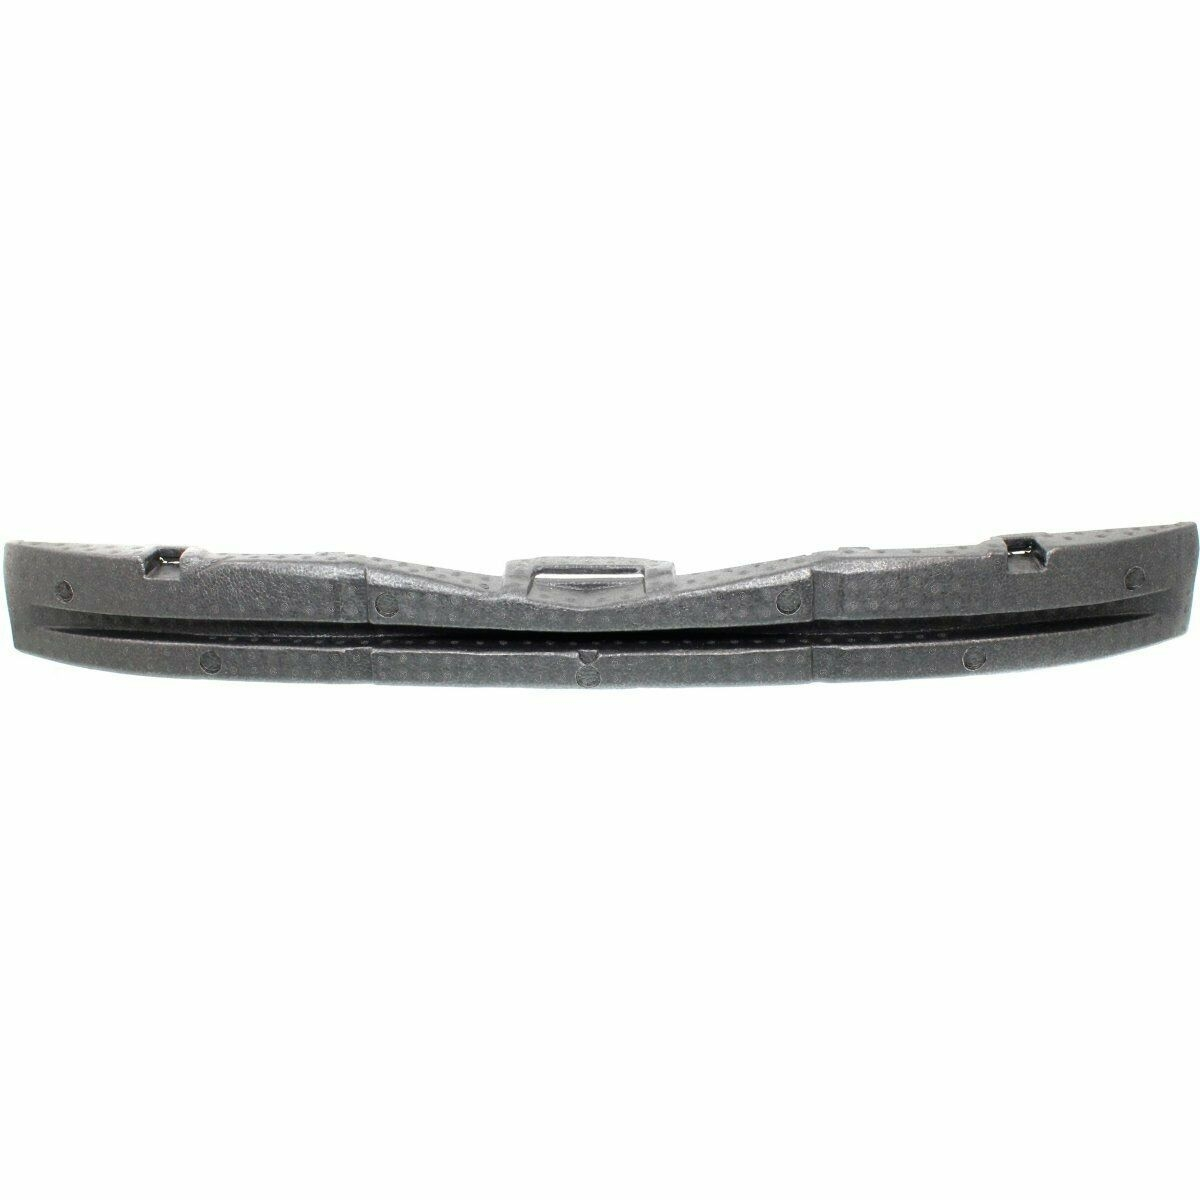 New Bumper Impact Front For Acura TSX 2011-14 AC1070122